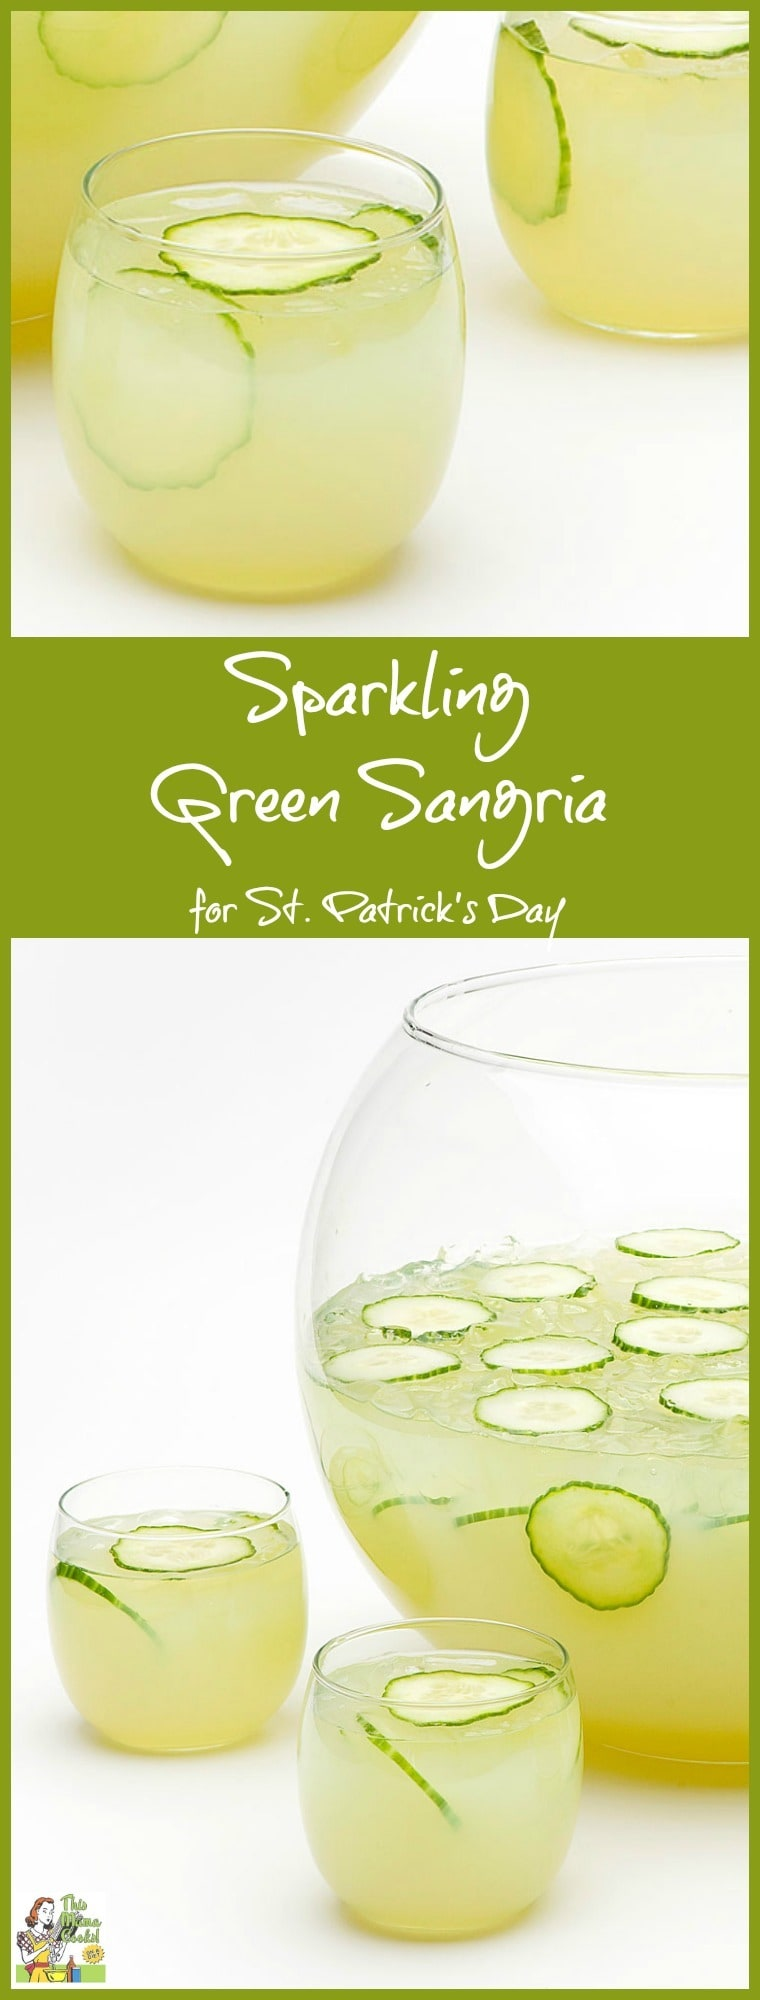 Gluten free or looking for an alternative to heavy Guiness or yucky green beer? Try this refreshing gluten free Sparkling Green Sangria recipe for St. Patrick's Day. It's a skinny green cocktail alternative! Click to get this green St. Patrick's Day drink recipe.